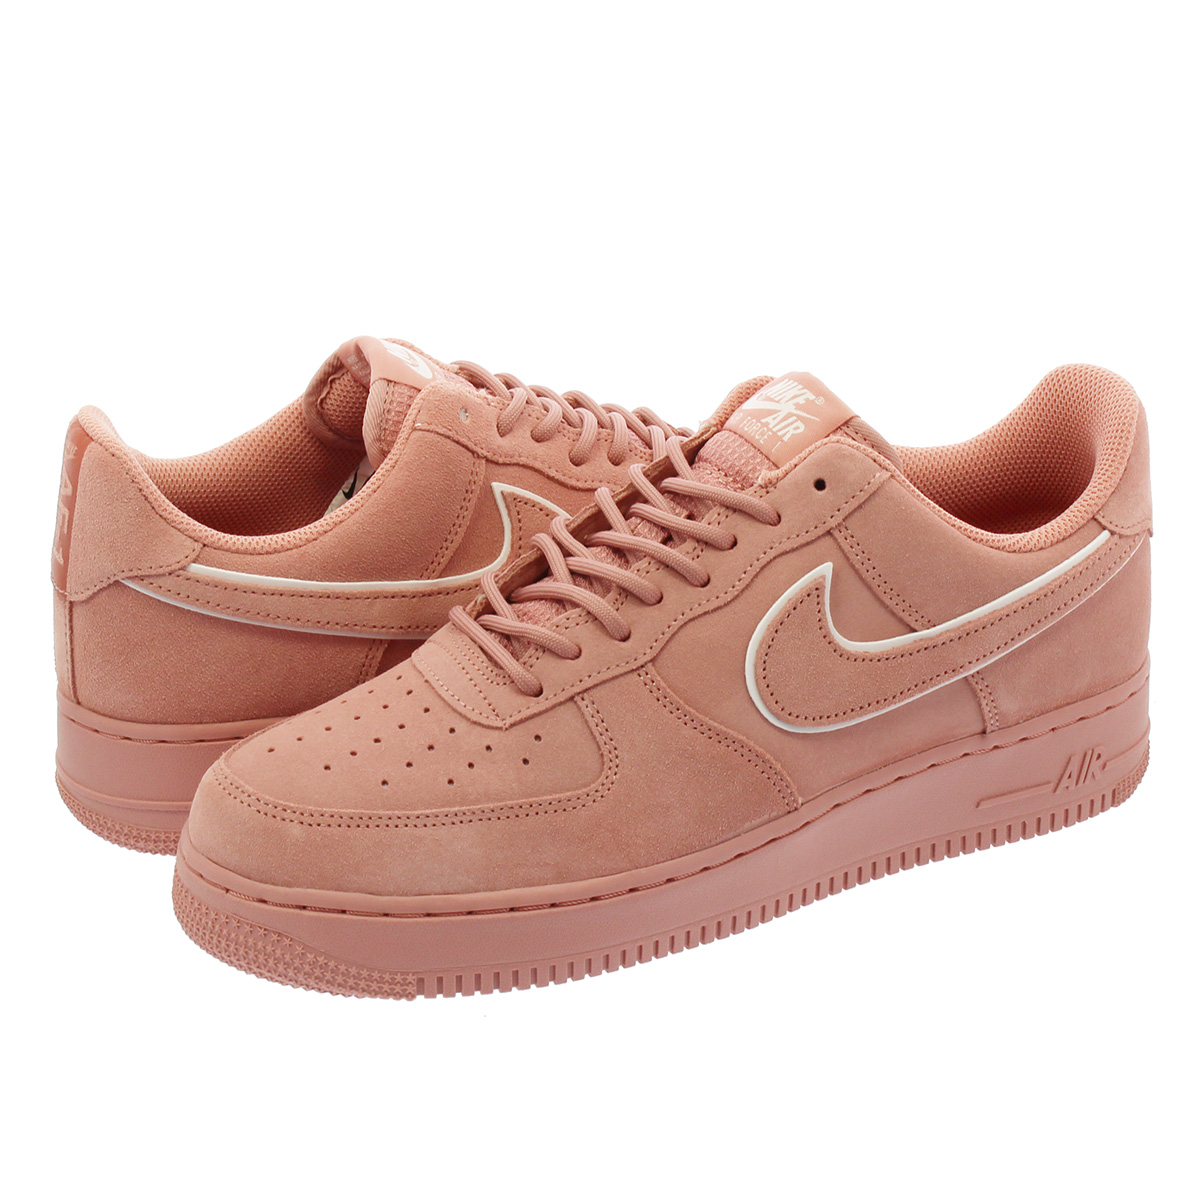 de47336b944 NIKE AIR FORCE 1  07 LV8 SUEDE Nike air force 1  07 LV8 suede RED STARDUST DRAGON  RED aa1117-601